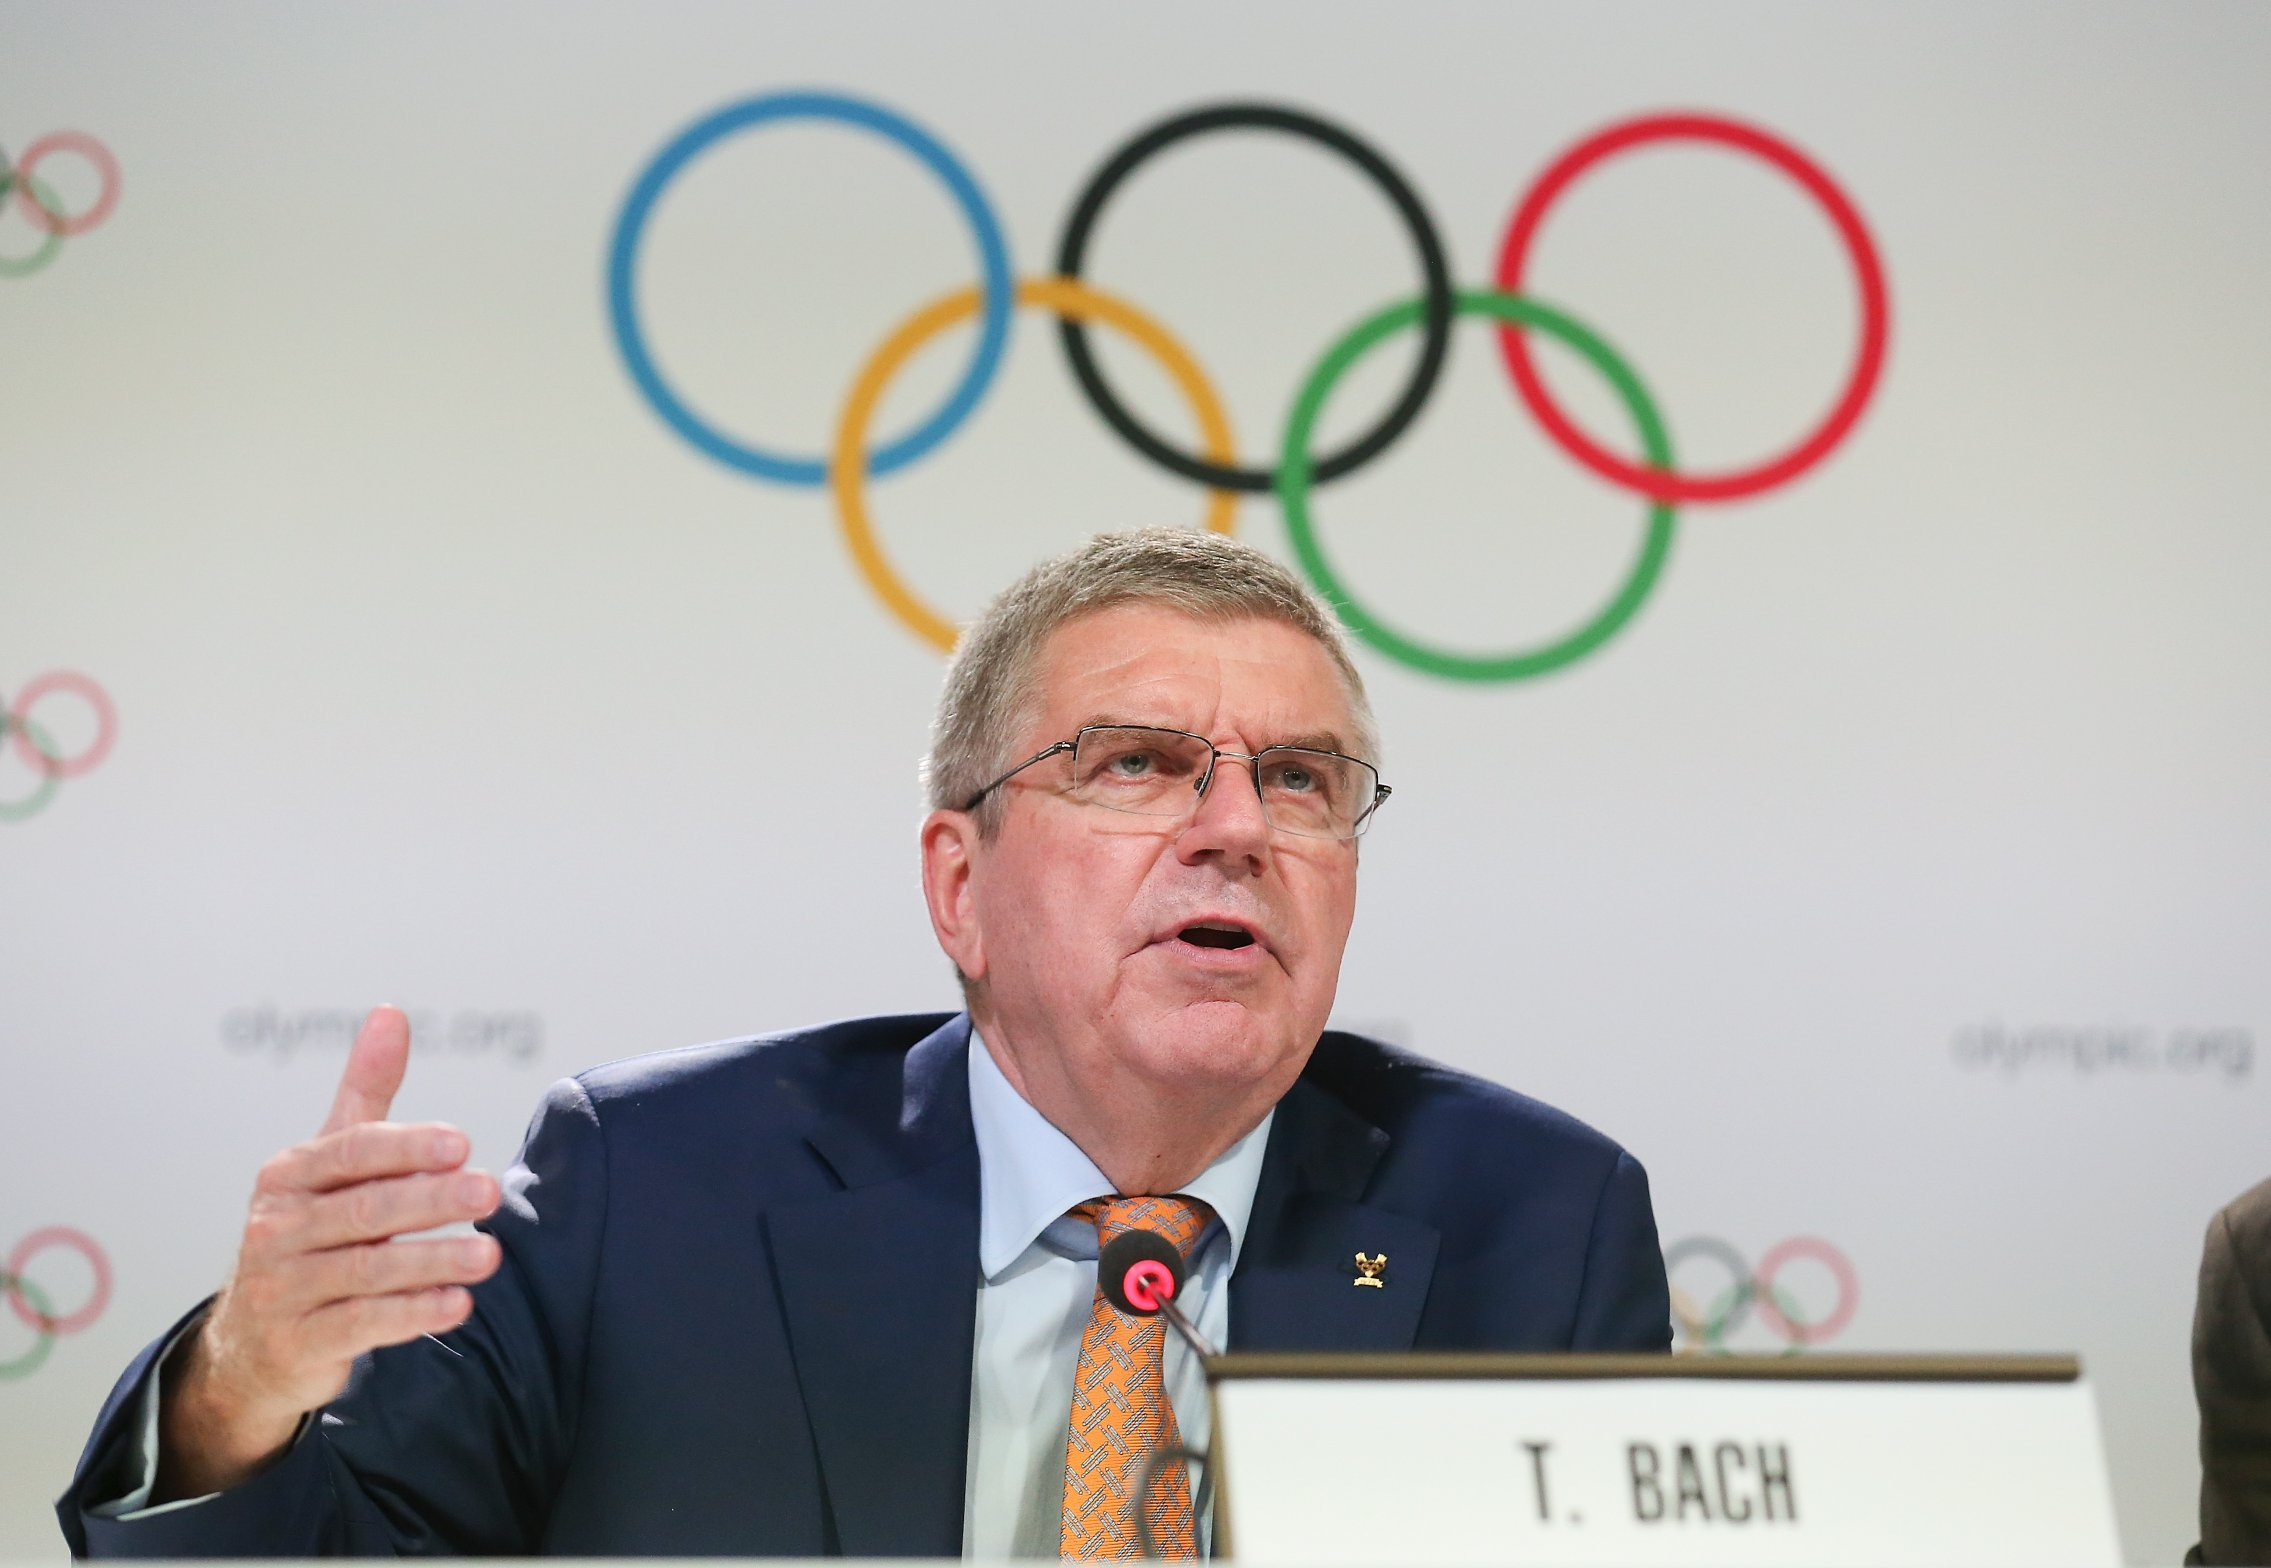 Big number of participants at Olympics will be vaccinated: Bach